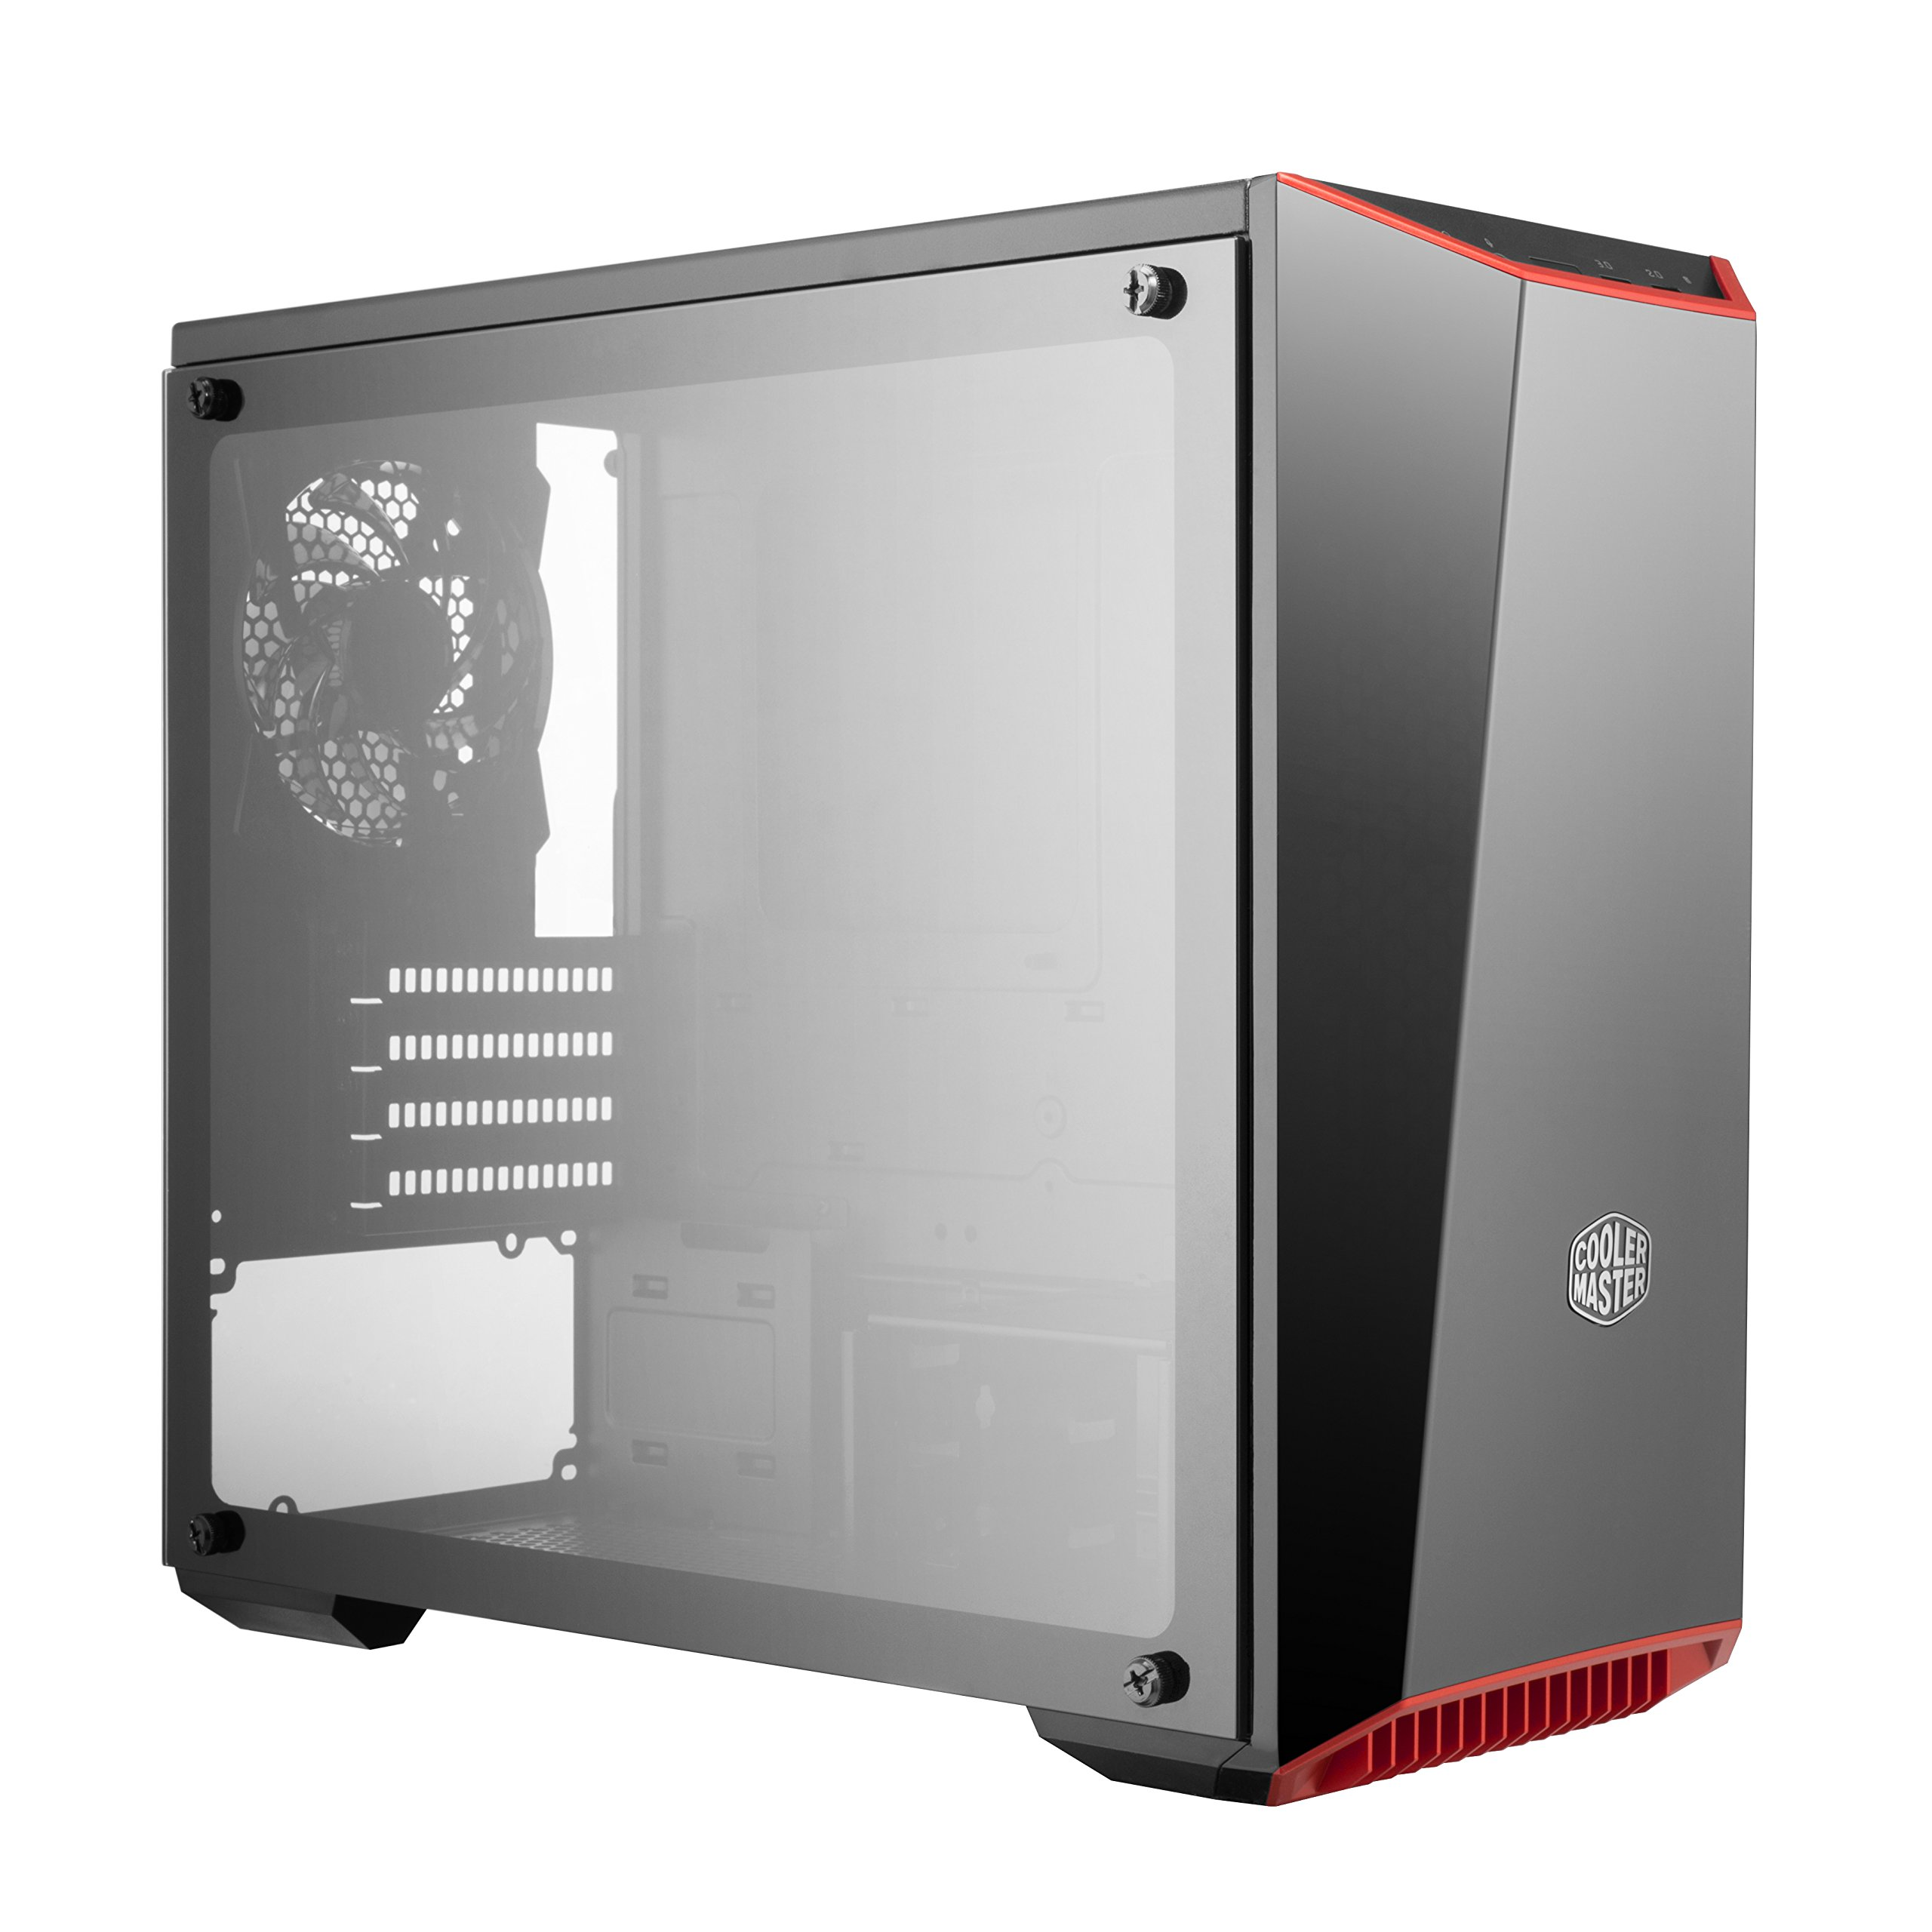 Cooler Master MasterBox Lite 3.1 TG Computer Case 'Dark Mirror Front Panel, Customisable Trim Colours, Tempered Glass Side Panel' MCW-L3S3-KGNN-00 by Cooler Master